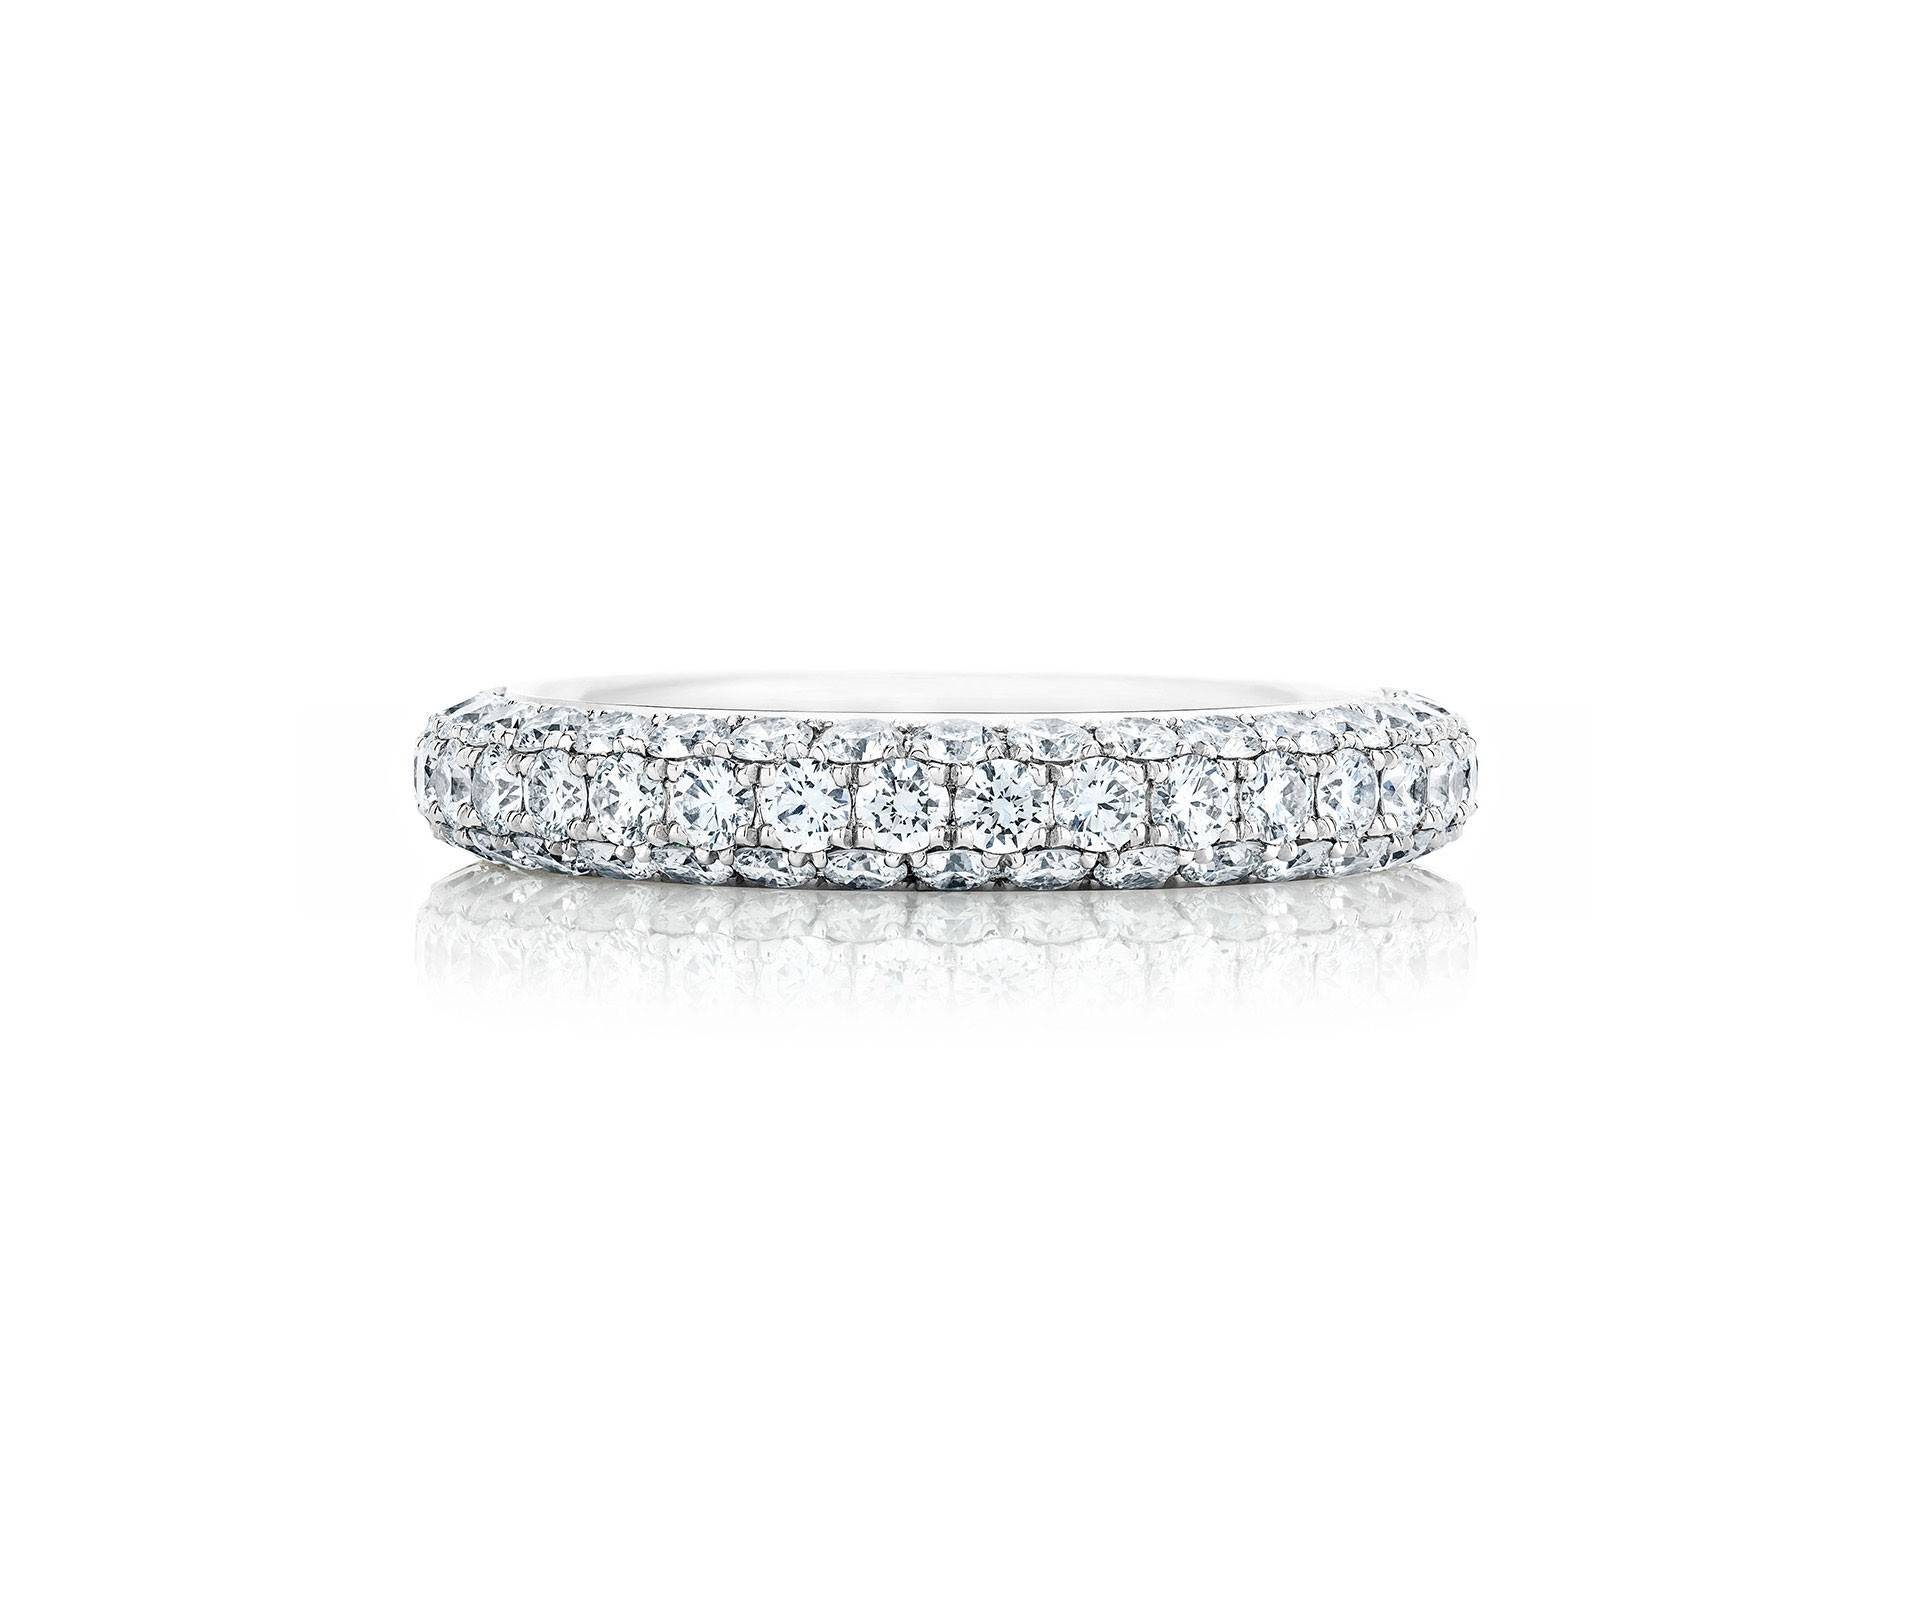 Diamond Rings And Bands For Women | De Beers Us Intended For Most Recent Pave Anniversary Rings (Gallery 13 of 25)